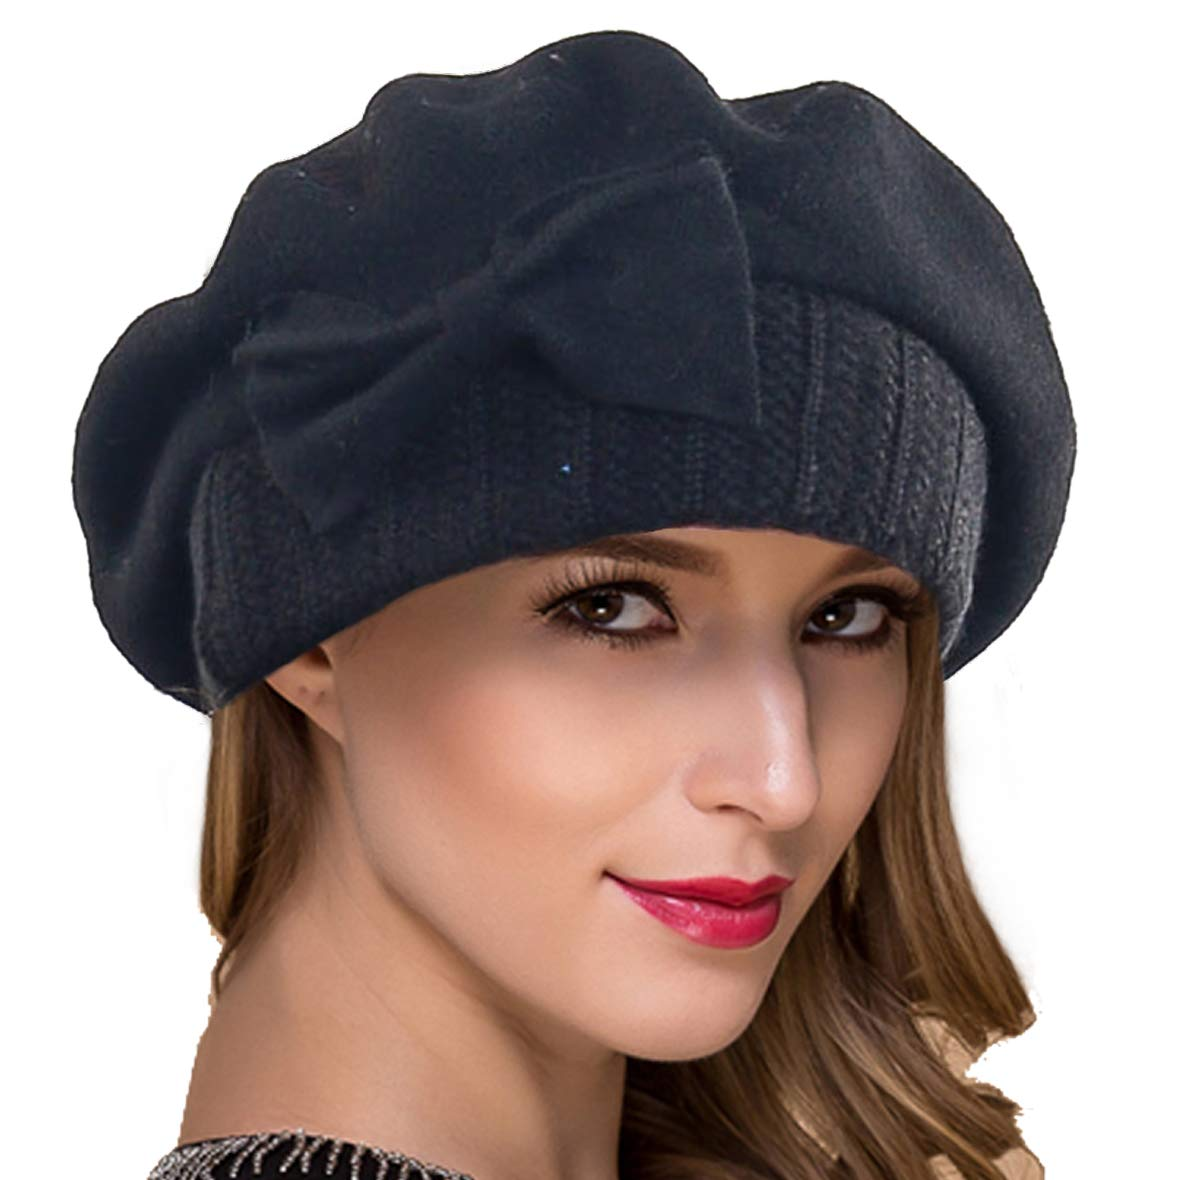 Ruphedy Women French Beret Knit Wool Beret Beanie Winter Dress Hats Hy022  (Black) at Amazon Women s Clothing store  29c41a19481